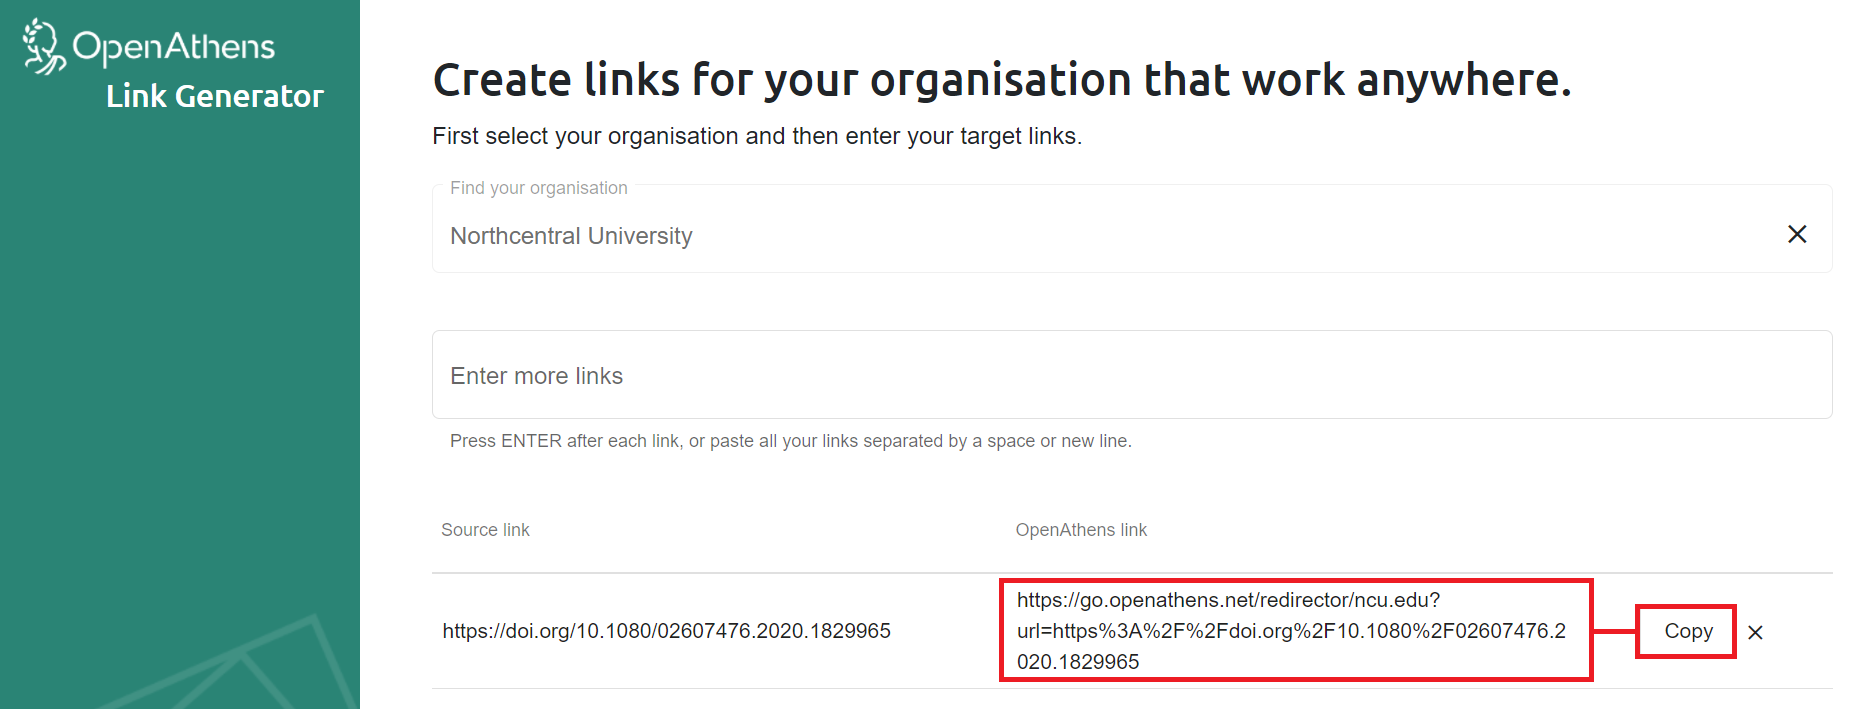 OpenAthens redirector lnk generator tool displaying a resource permalink for Taylor & Francis article